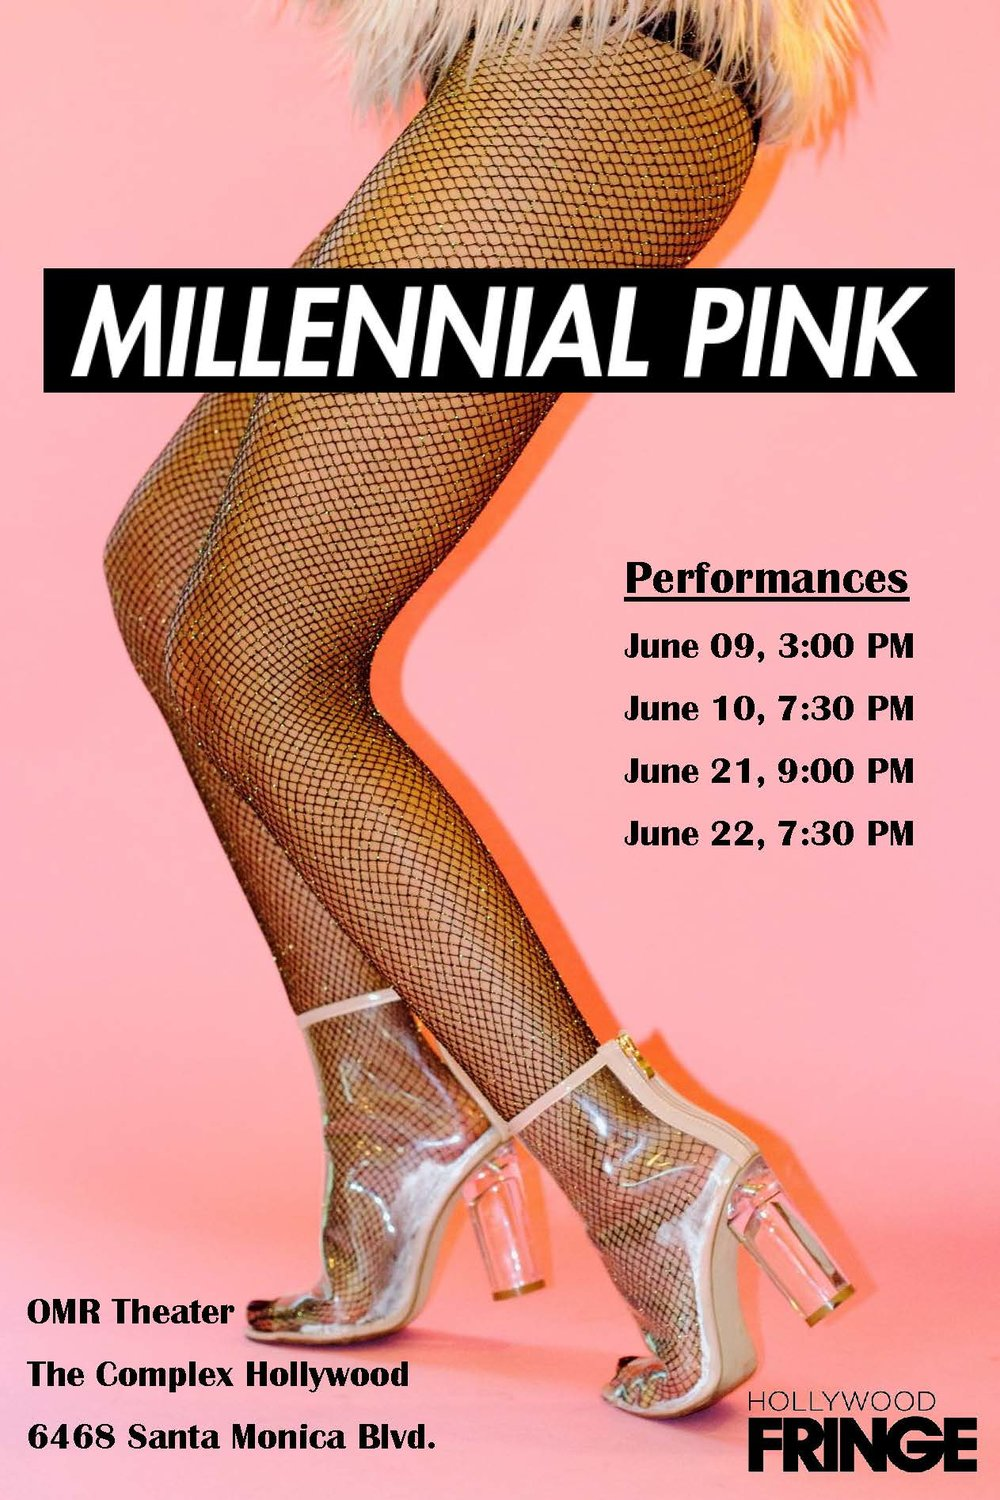 Buy tickets HERE - I'm joining this badass cast JUNE 9th -10th! Come and support live theatre and the Hollywood Fringe!**$12 with promo code avocadotoast